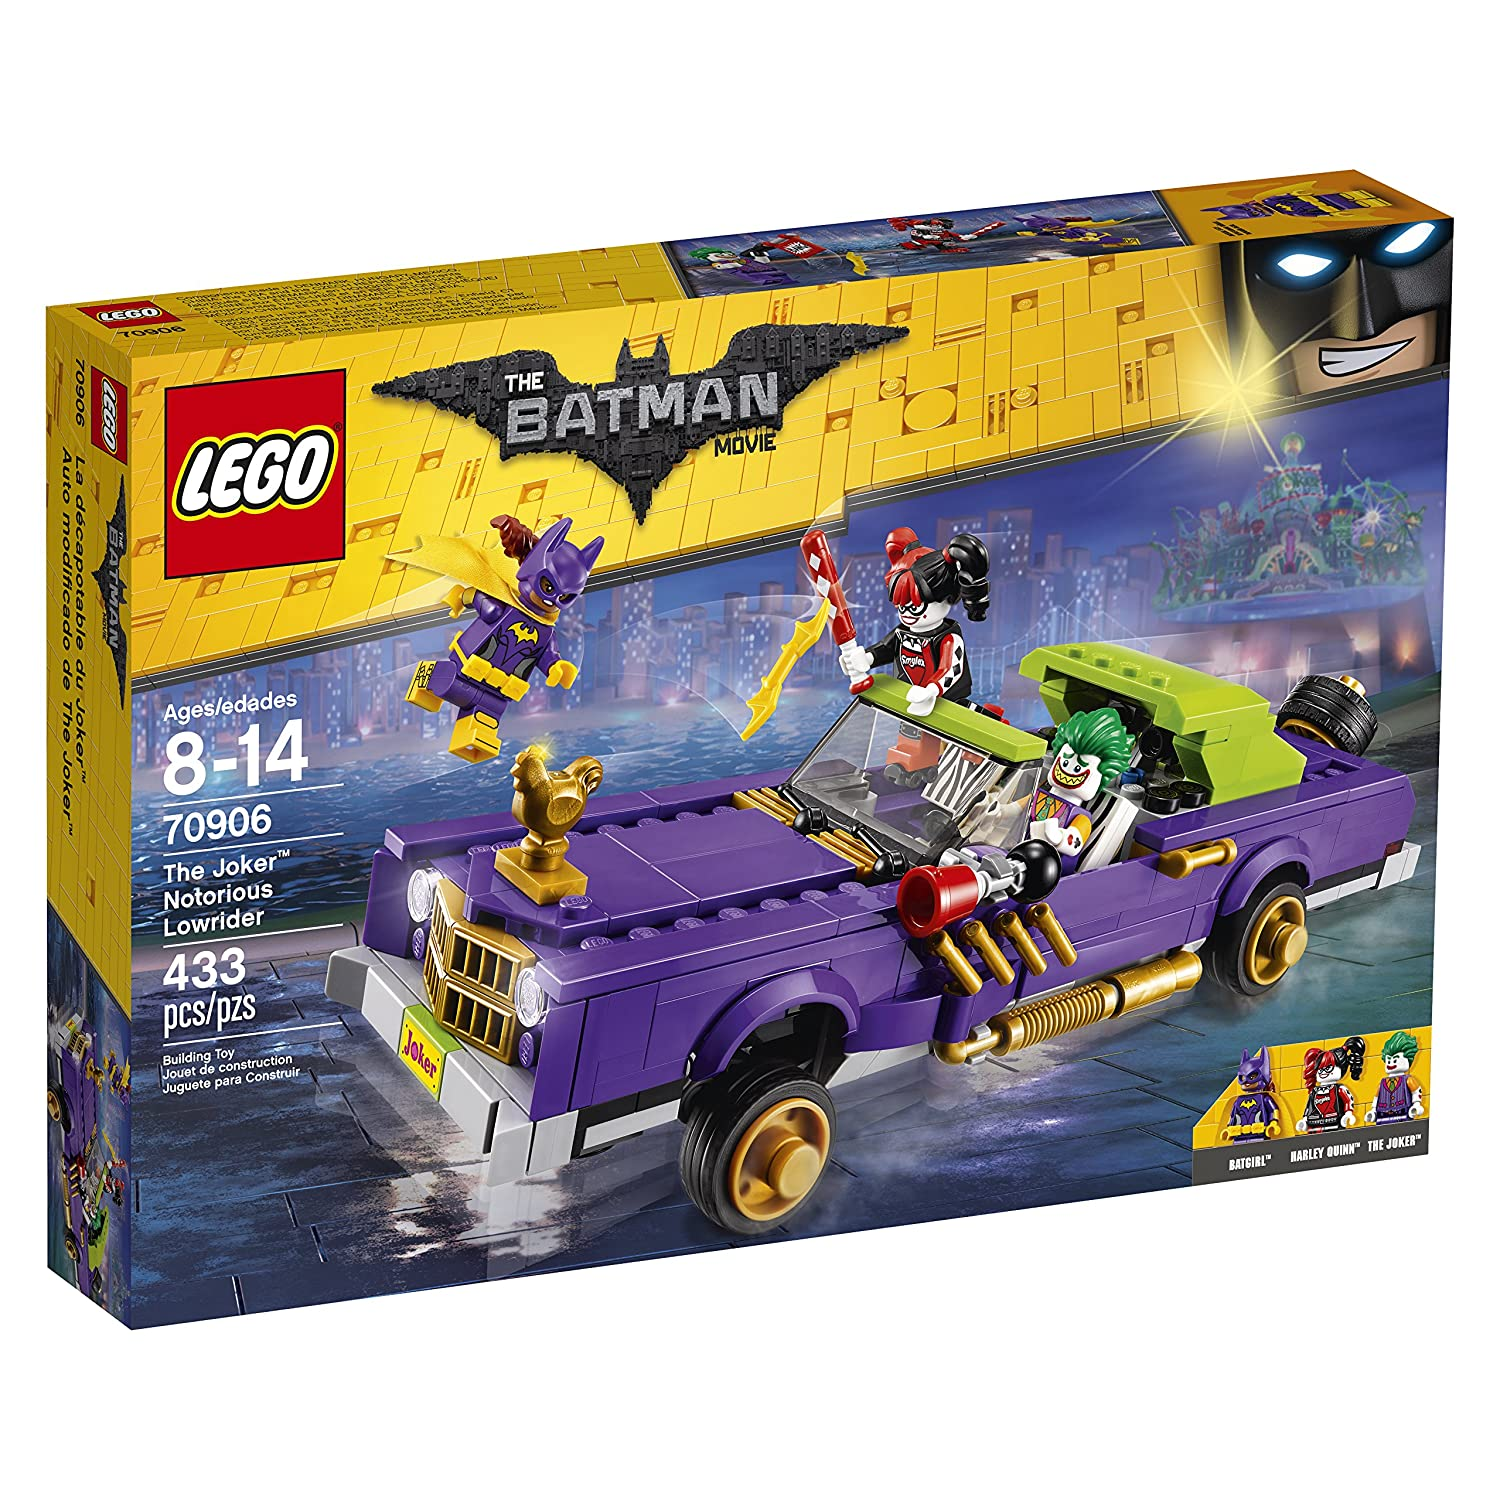 LEGO BATMAN MOVIE The Joker Notorious Lowrider 70906 Building Kit (433 Piece)